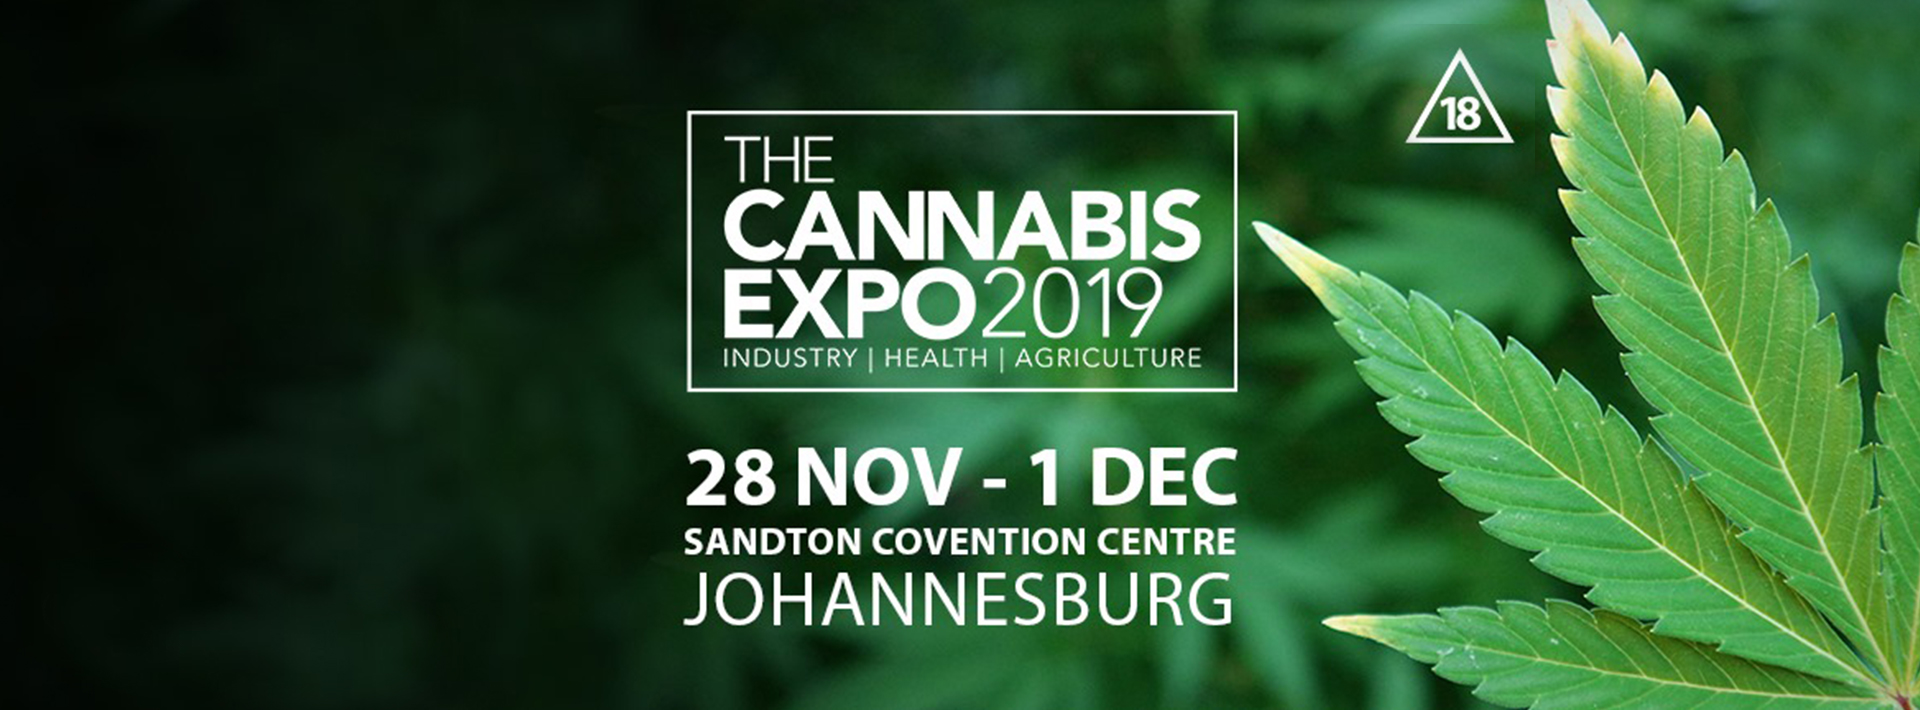 Homepage_Banners_CannaExpo2019_